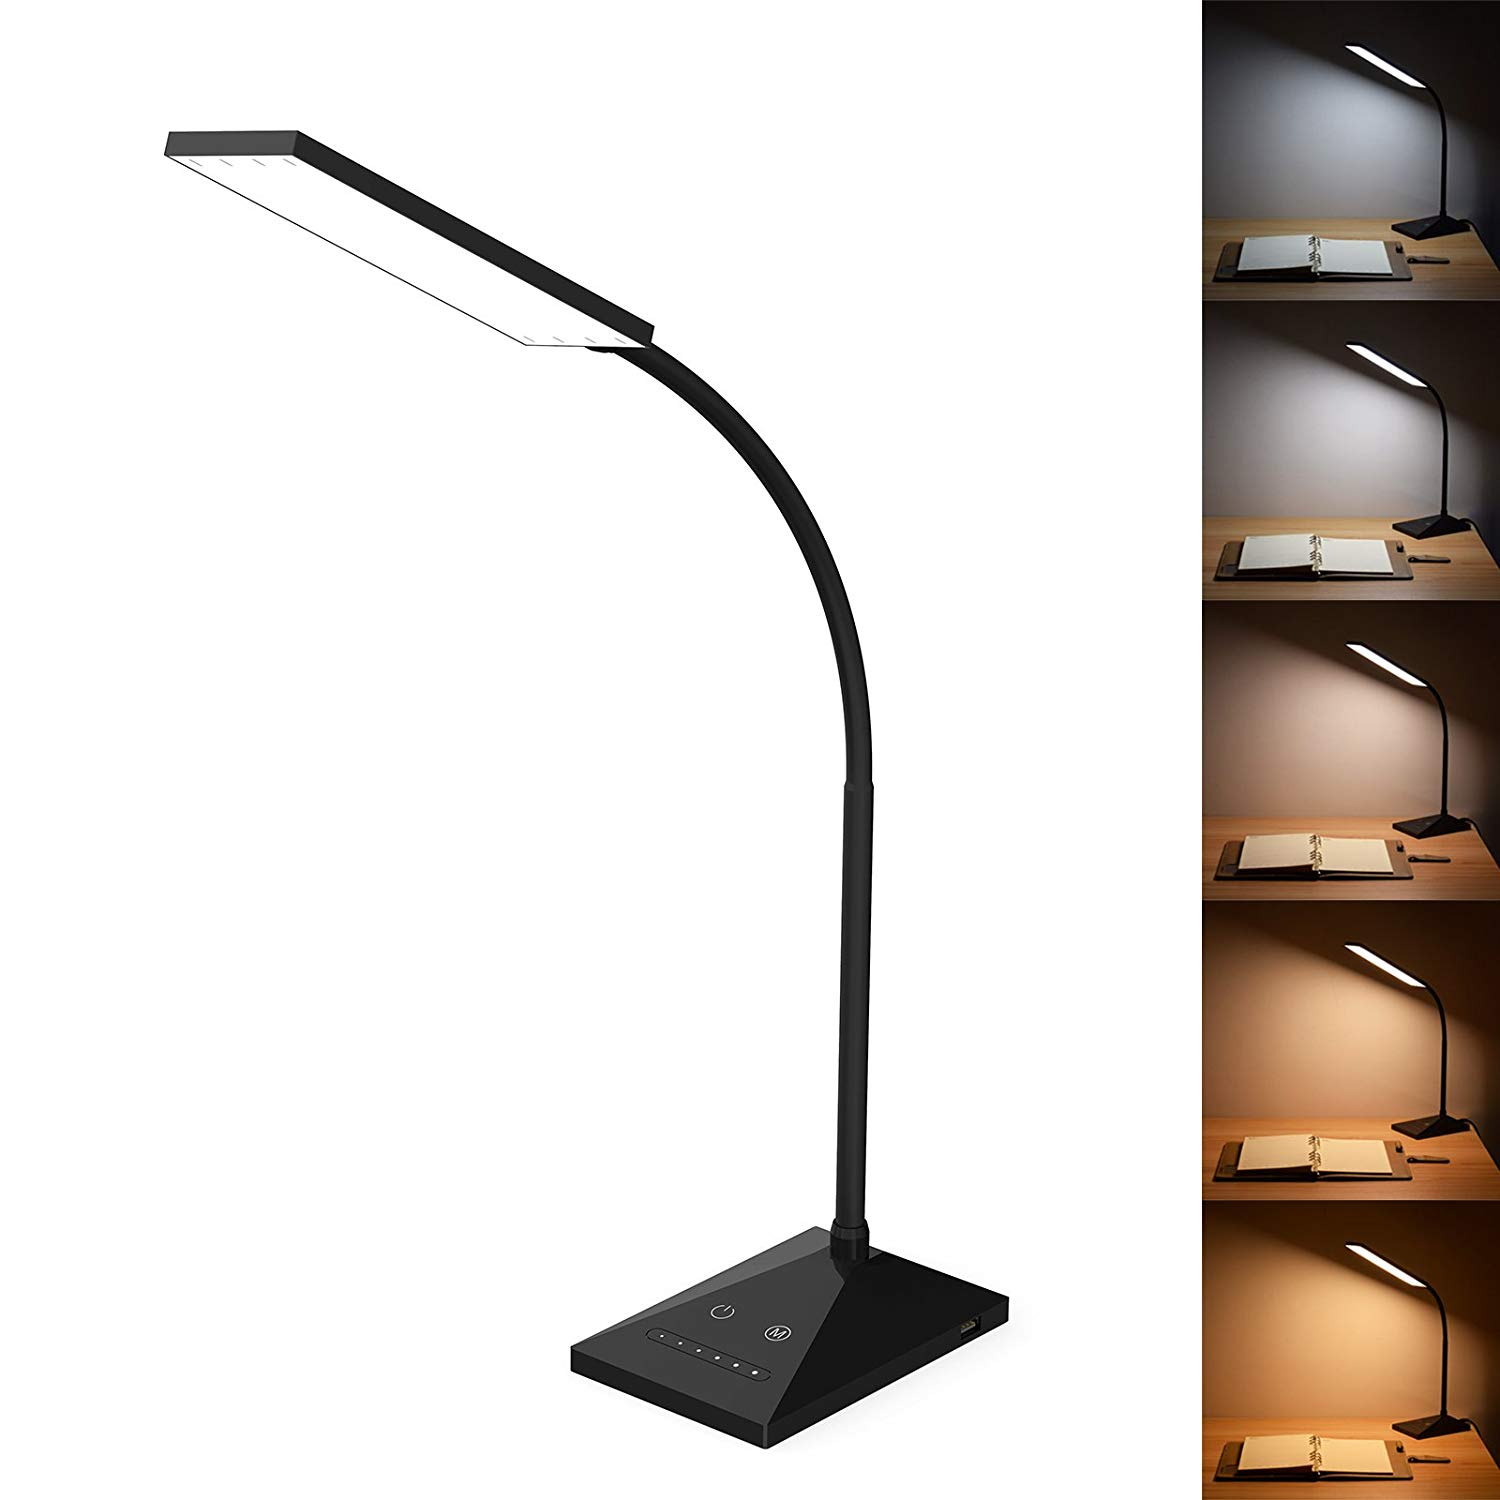 Kootion 12w Led Desk Lamp With Usb Charging Port 5 Modes 7 Brightness Touch Control Memory Function 72 Leds Eye Caring Office Table